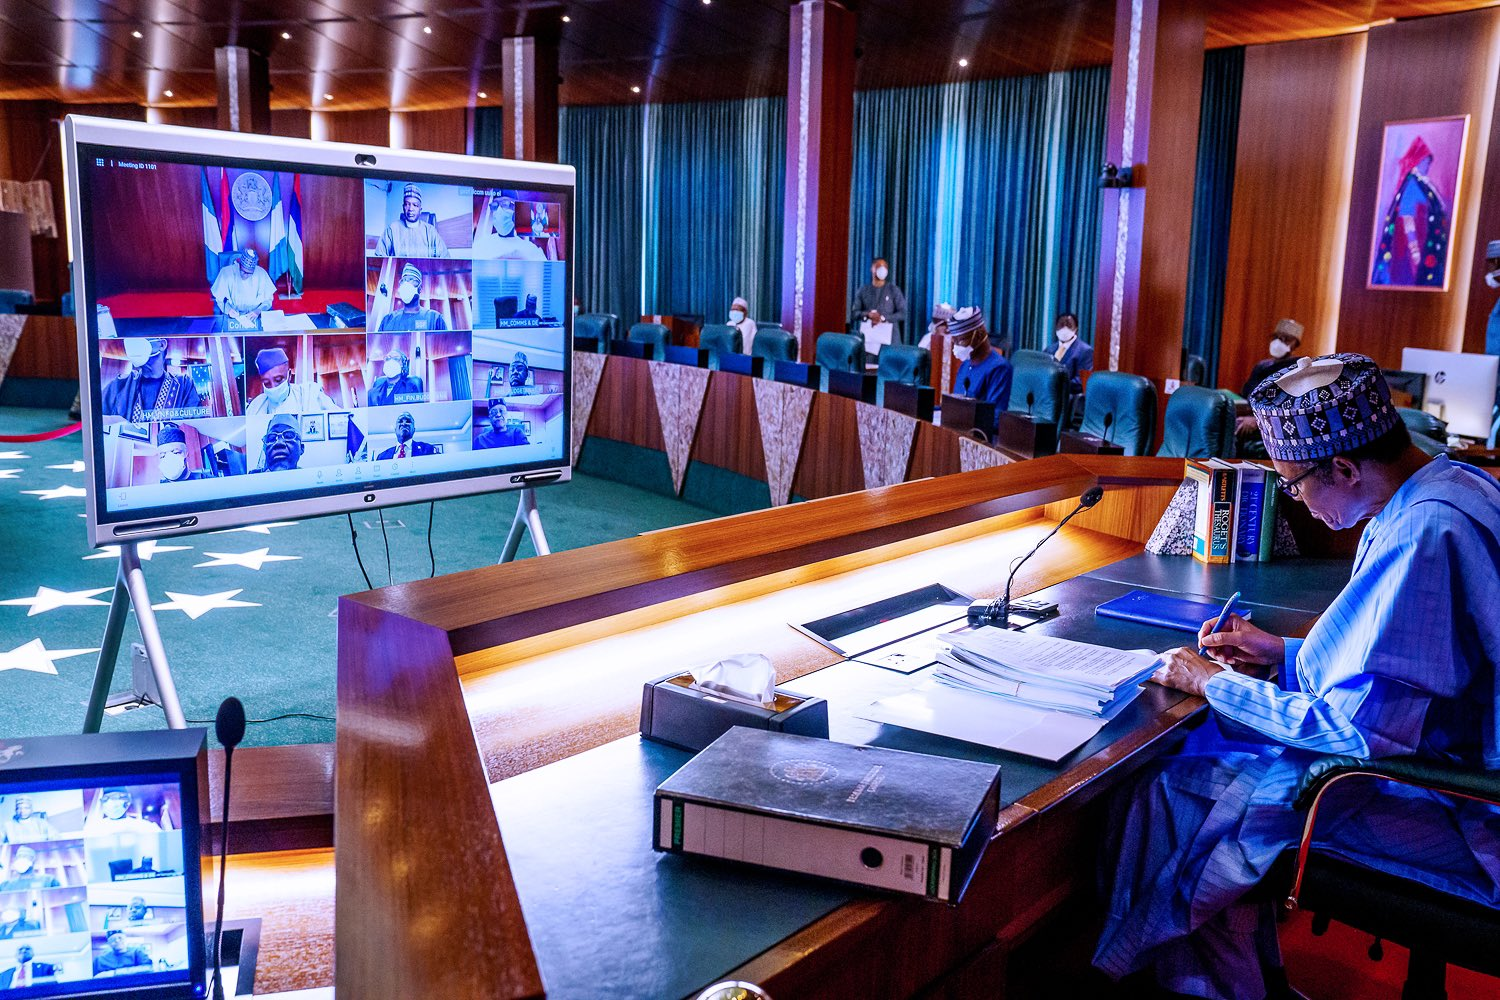 FEC: Buhari Approves ₦2.9 Billion For Printing Of Question Papers, Others